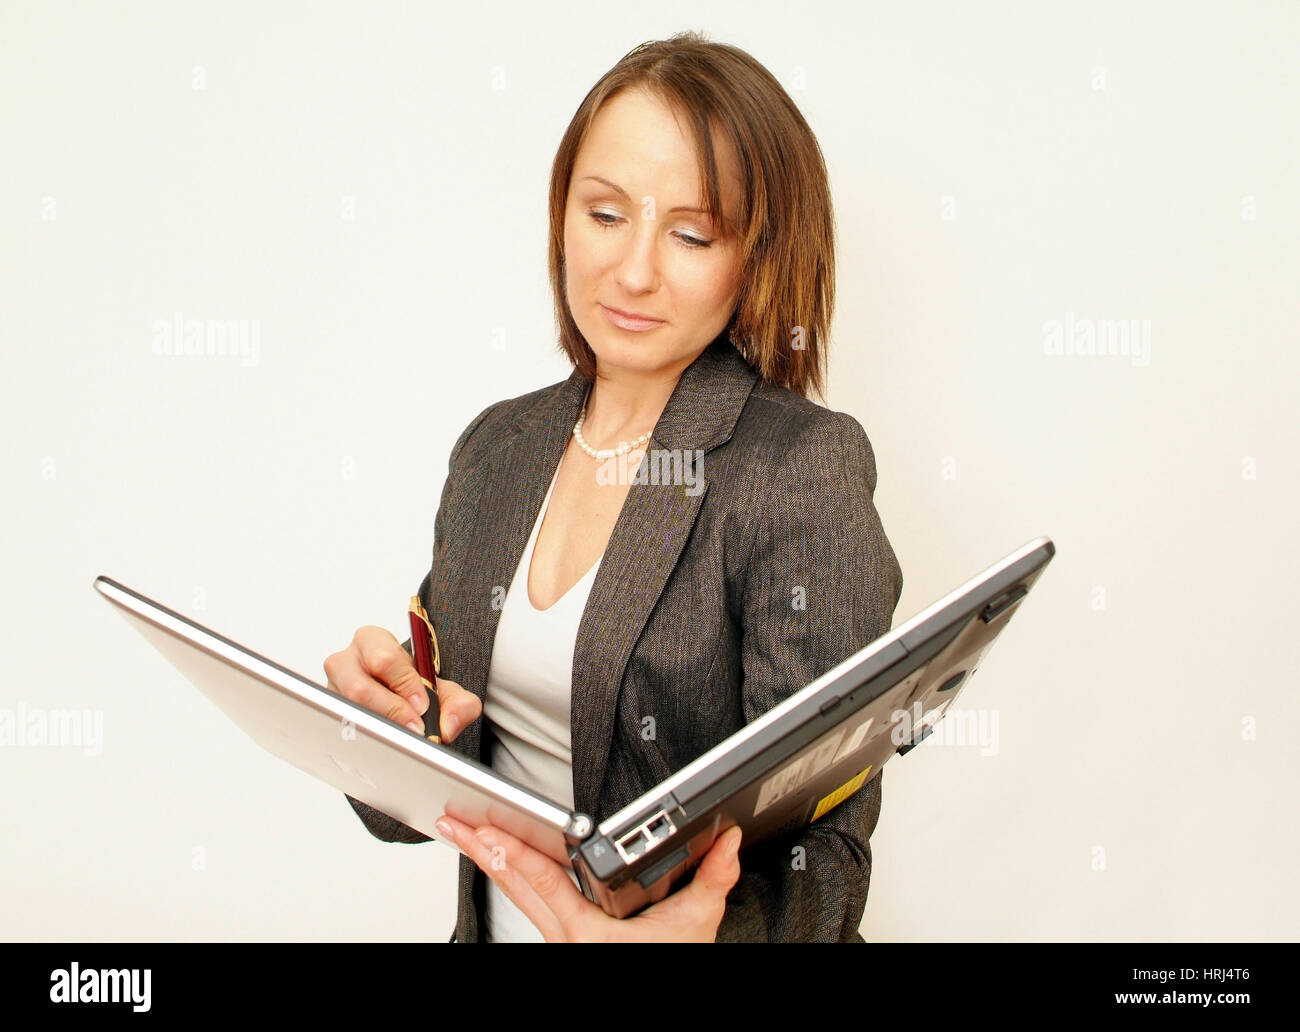 Junge Gesch?ftsfrau schreibt in Laptop - young business woman wriing in laptop, Symbolfotos Stock Photo